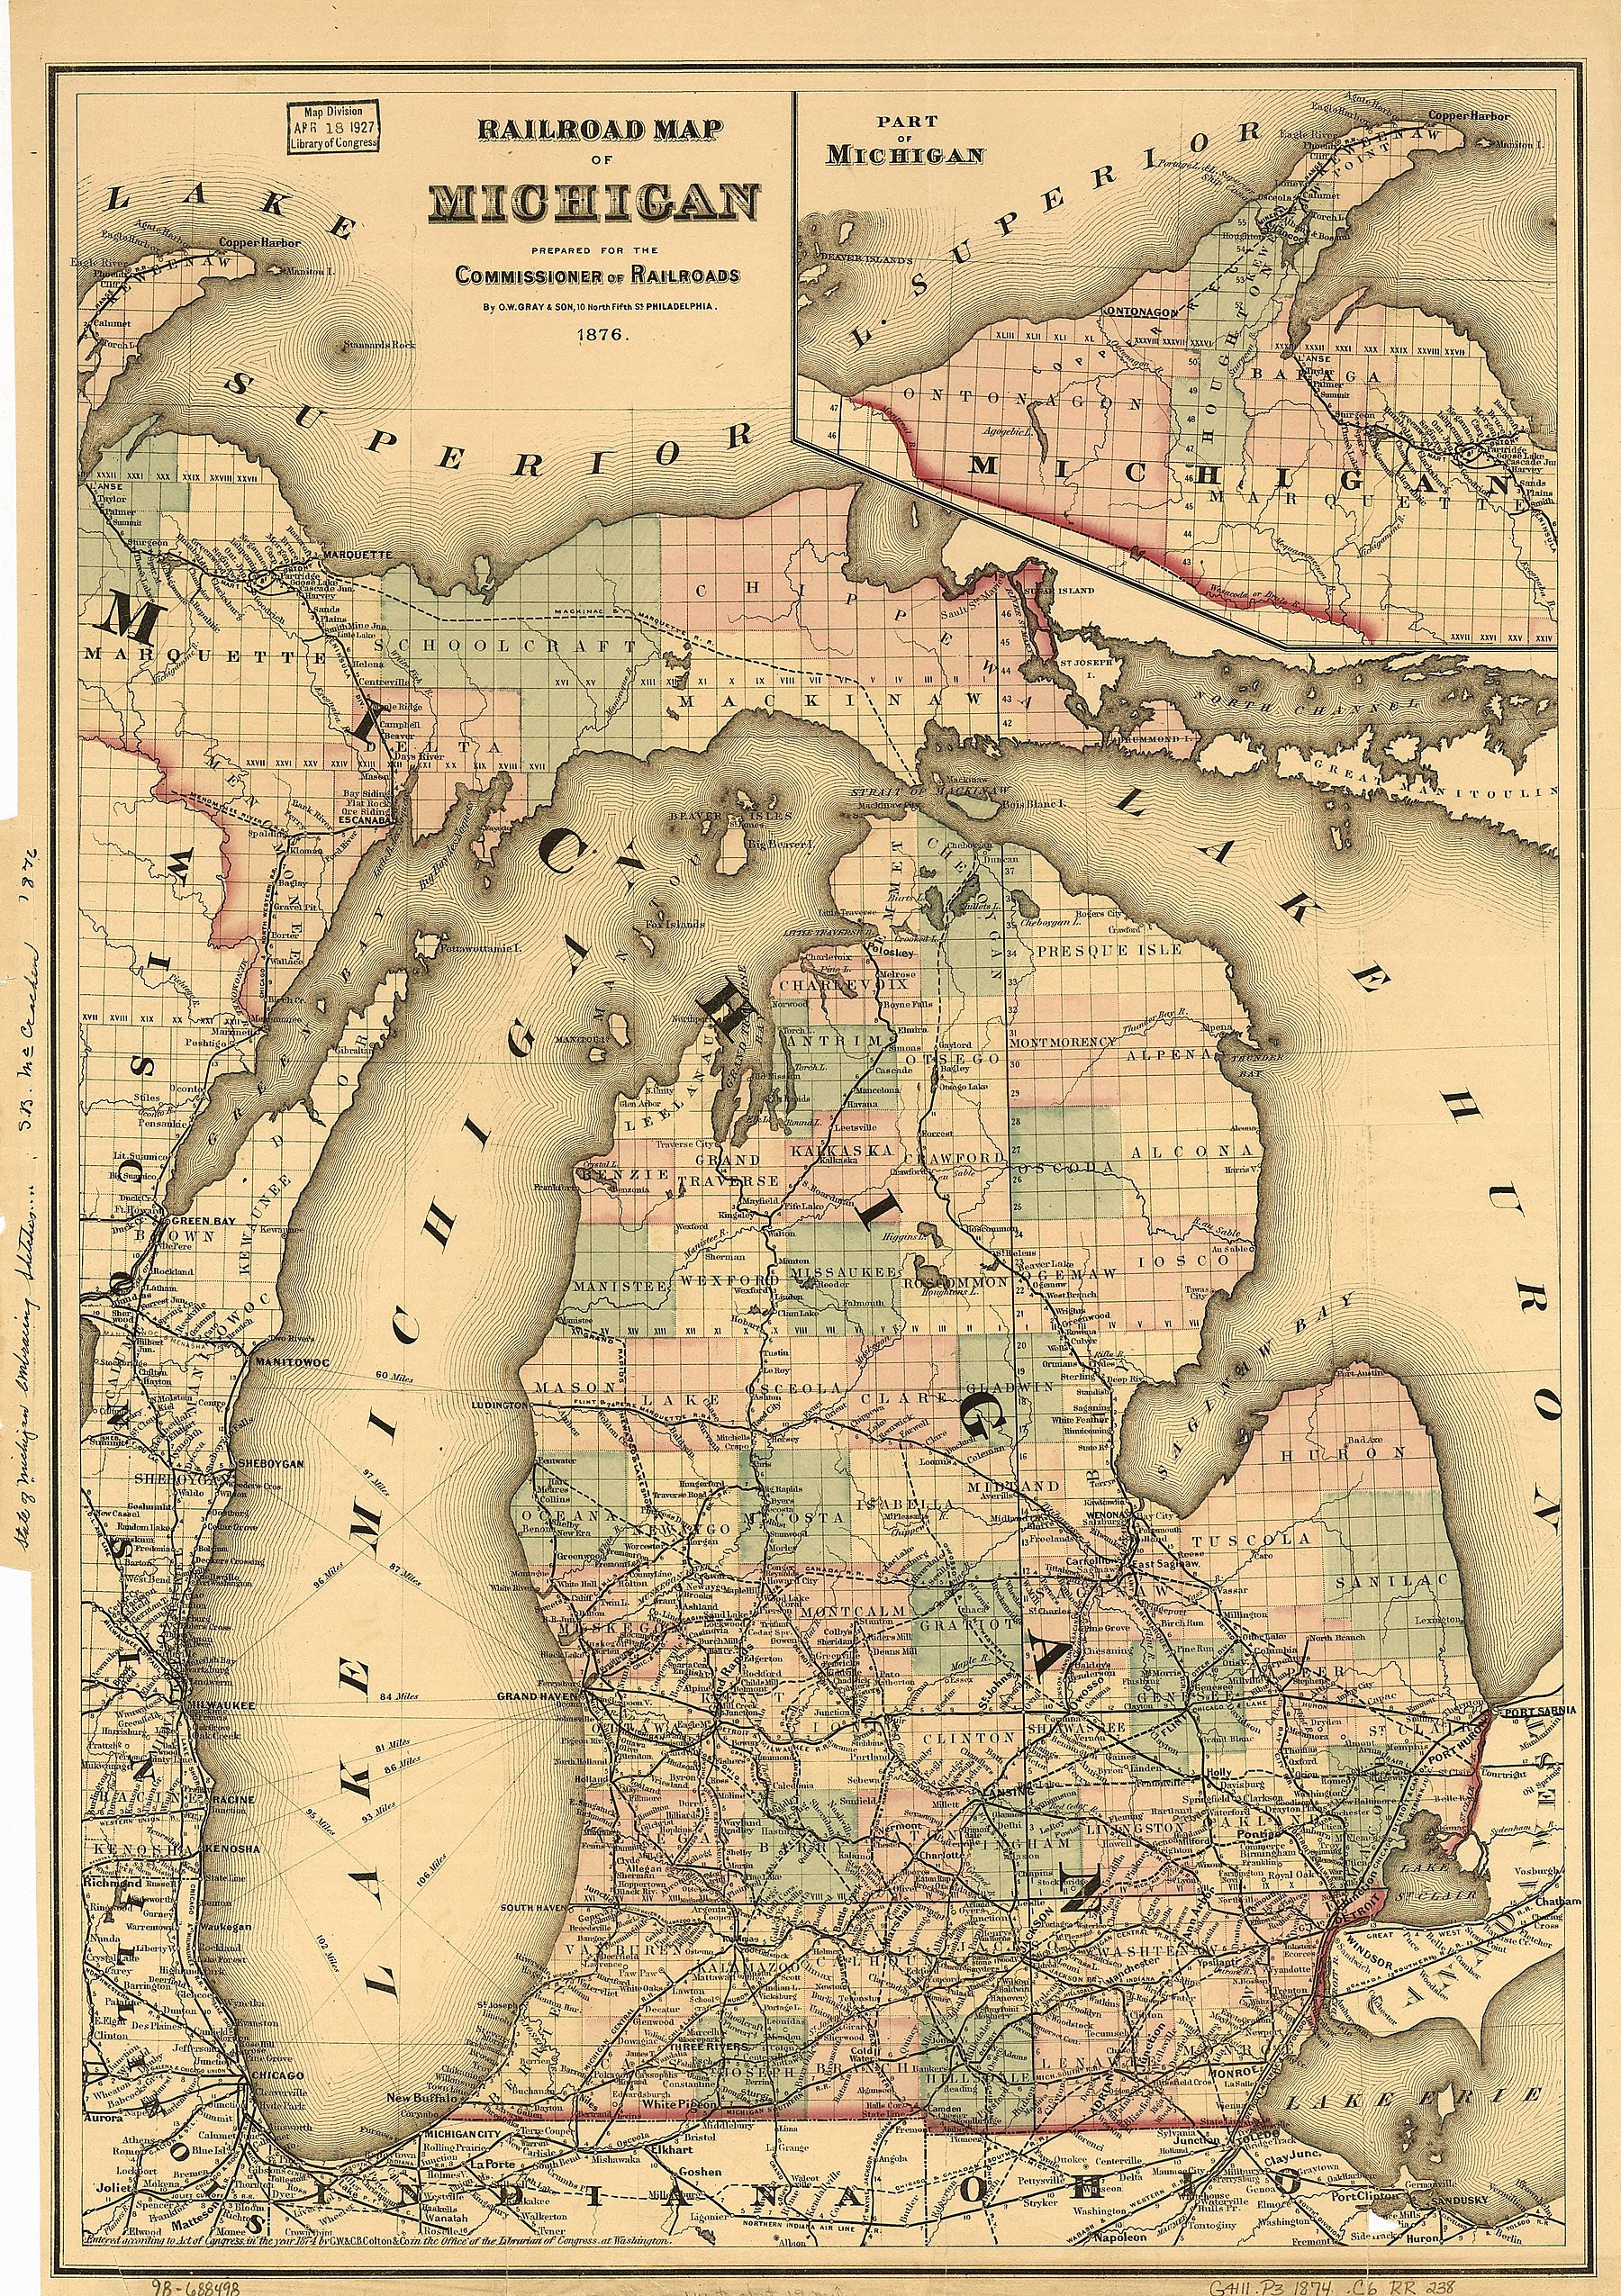 By 1876, the Grand Rapids and Indiana Railroad had built a line north to Petoskey with stops in Boyne Falls and Melrose. This link to cities in lower Michigan brought increased population to Charlevoix County, and new political power to the eastern part of the county.